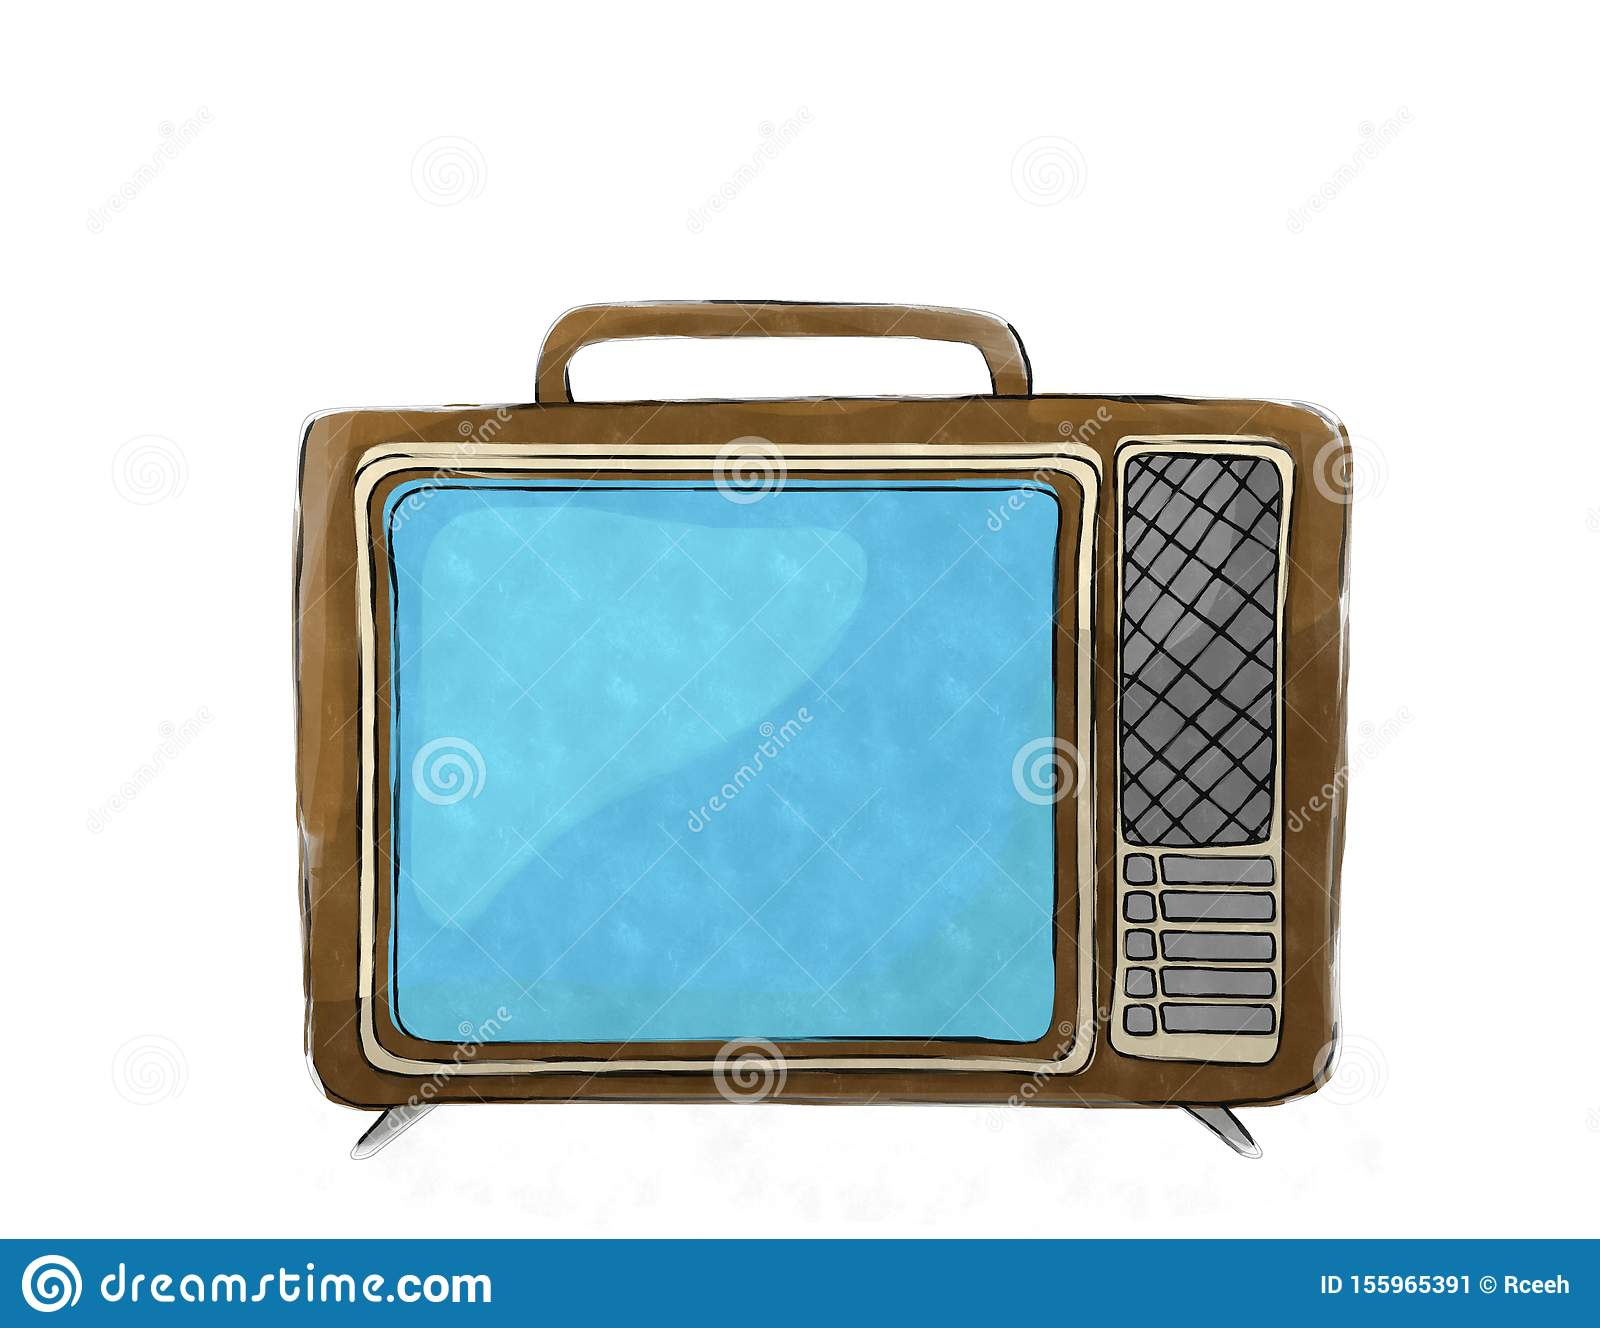 Watercolor retro tv set